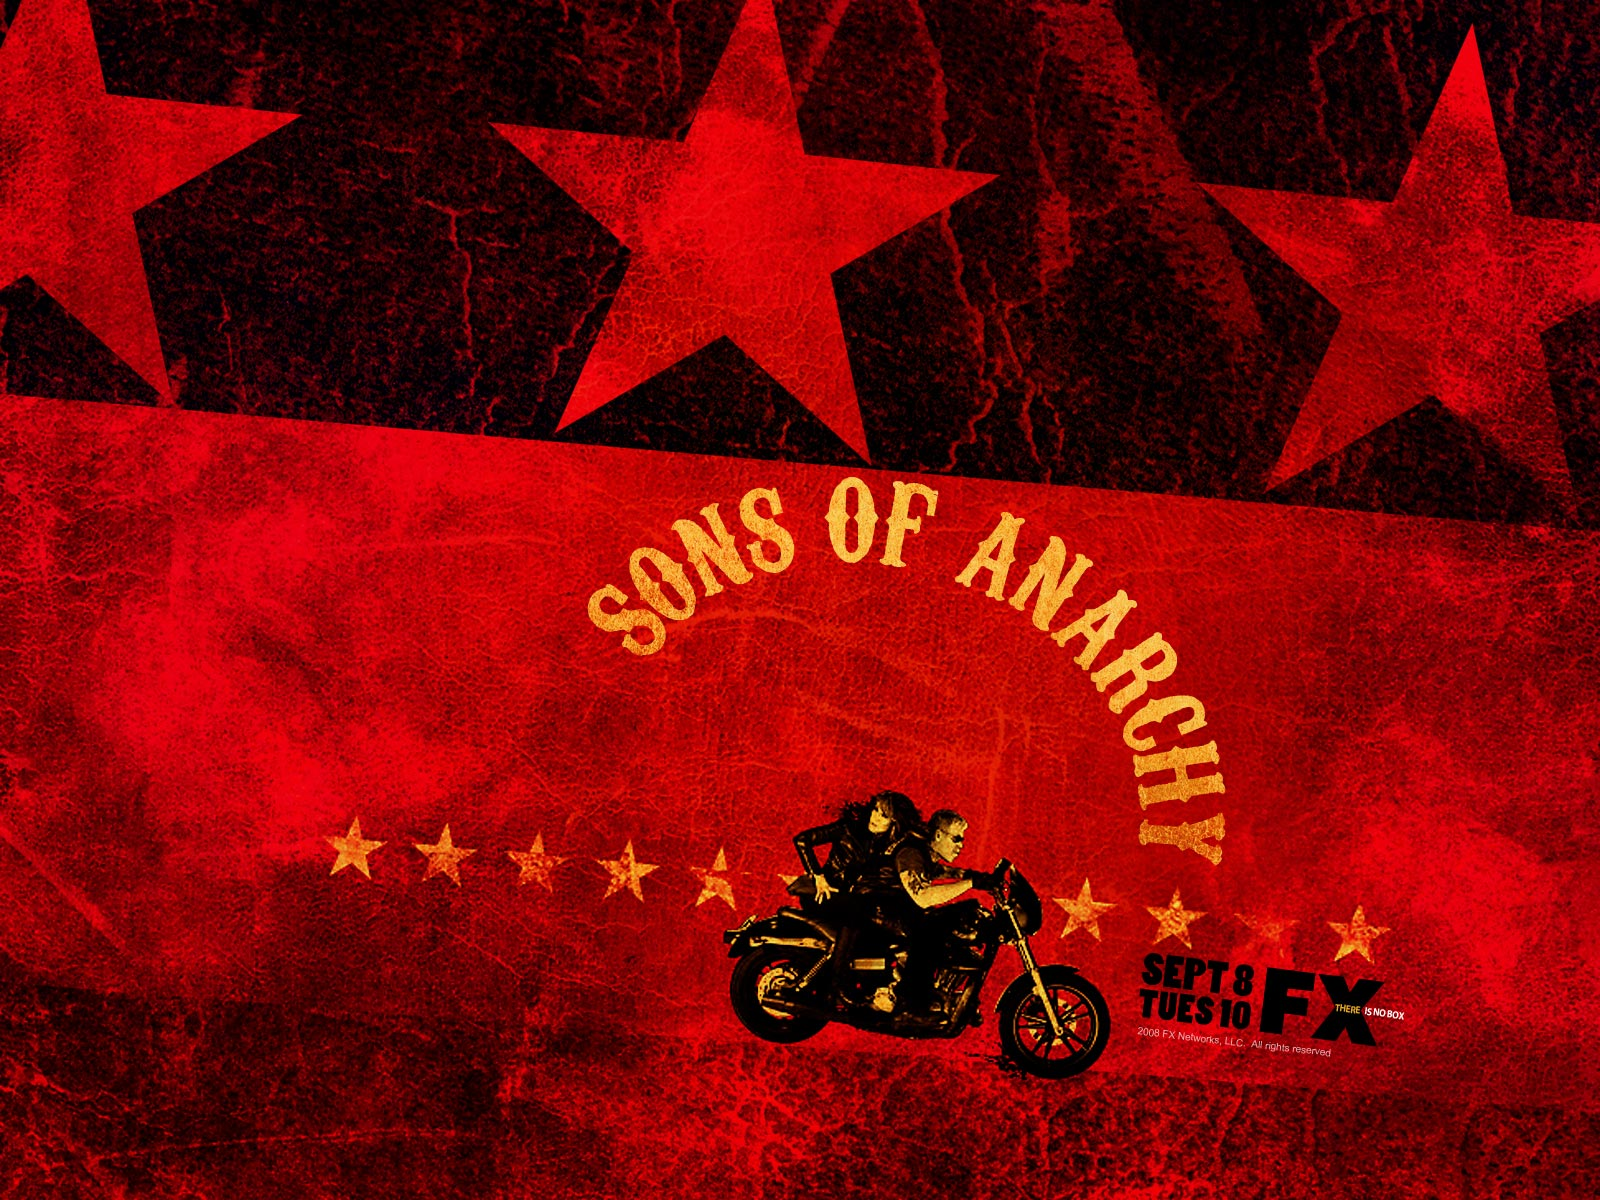 Sons Of Anarchy Wallpaper And Background Image 1600x1200 Id